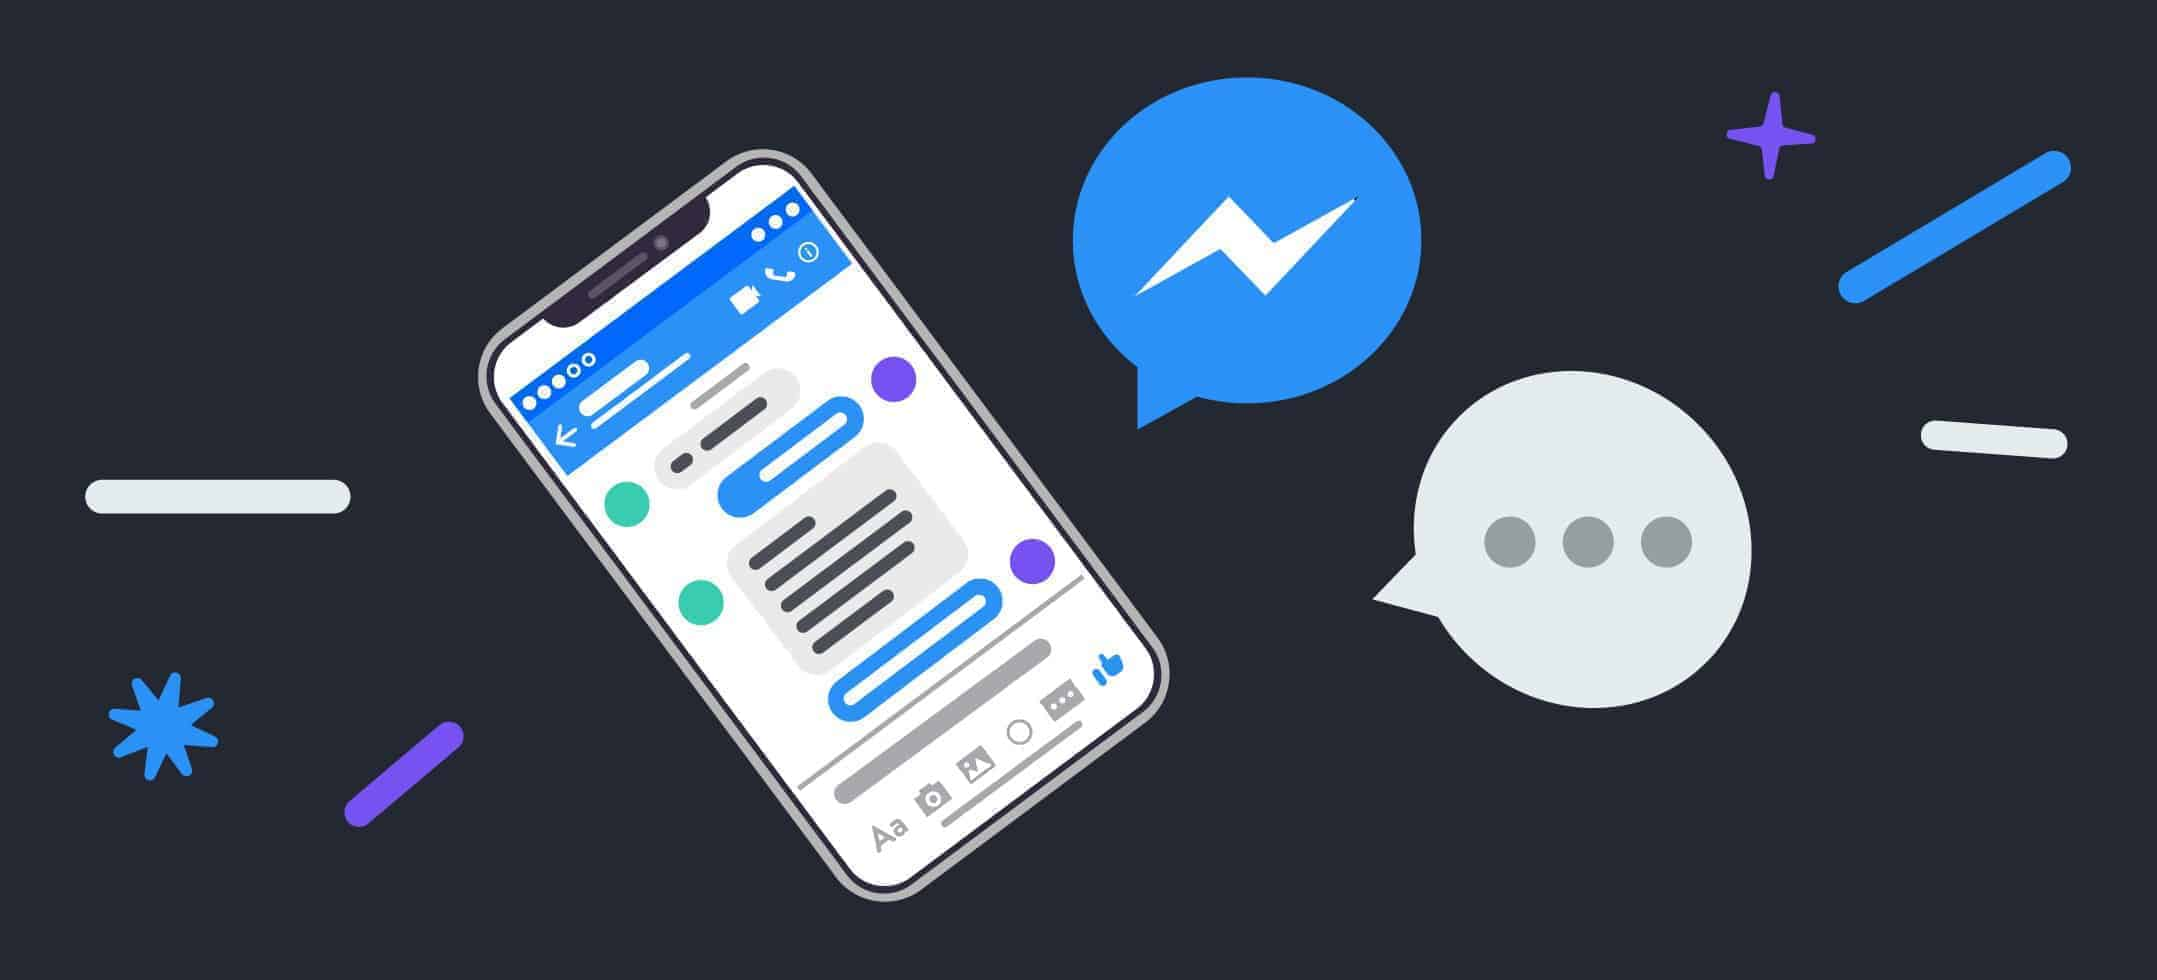 Come generare lead su Messenger e WhatsApp attraverso Facebook Ads